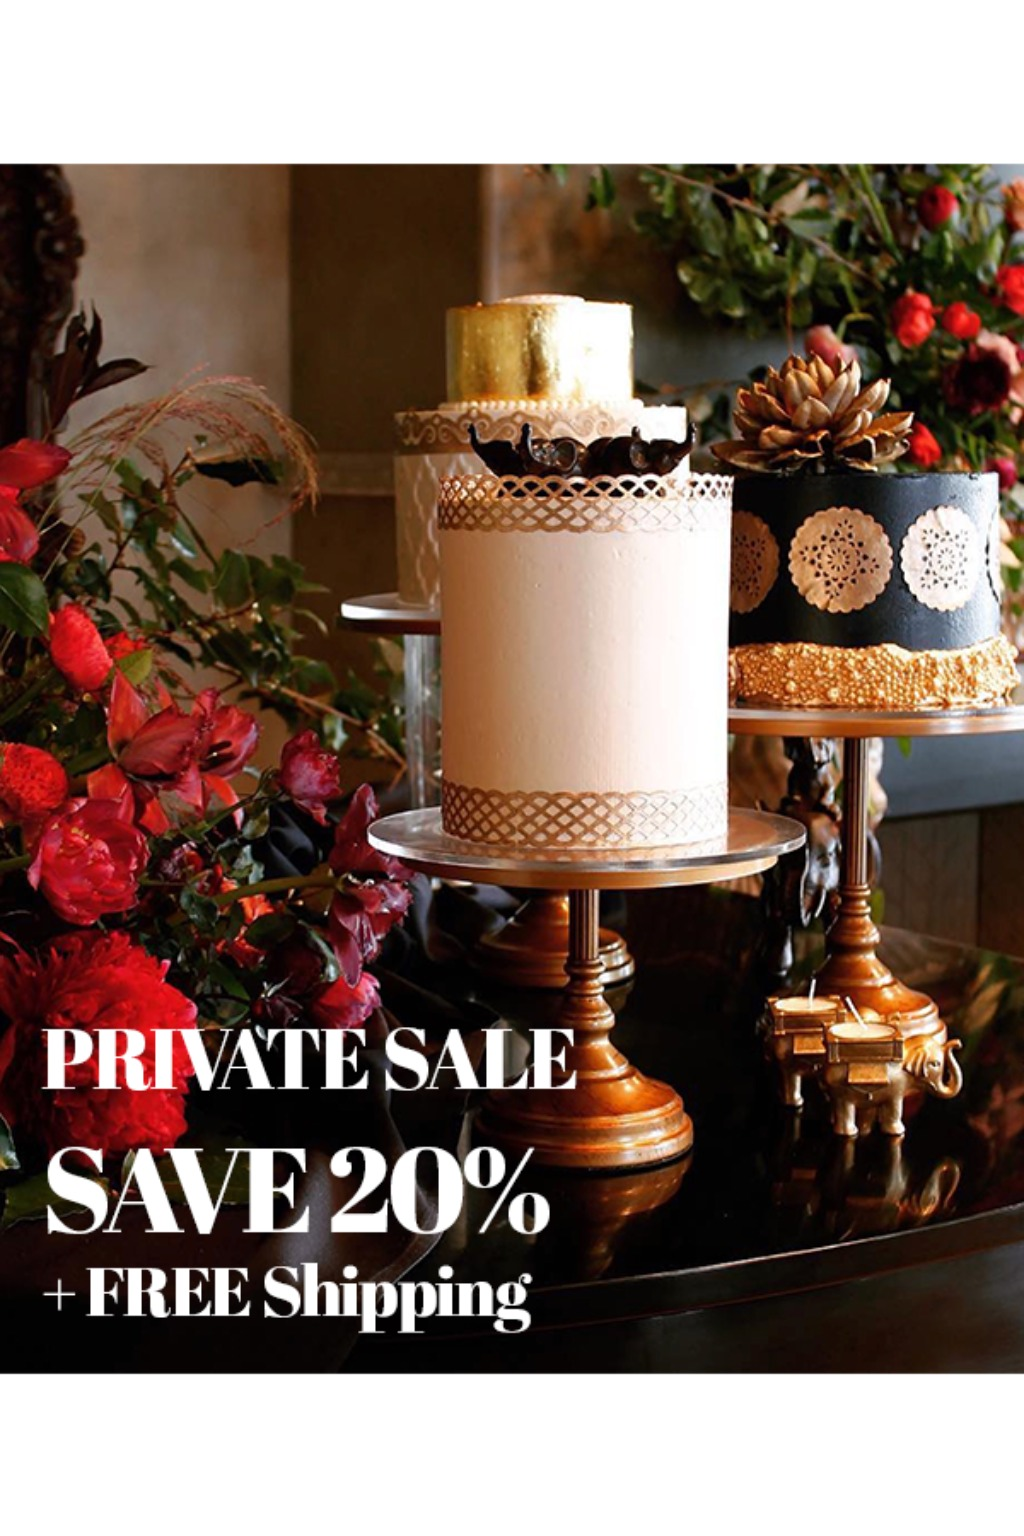 Opulent Treasures Private Sale Event + FREE Shipping